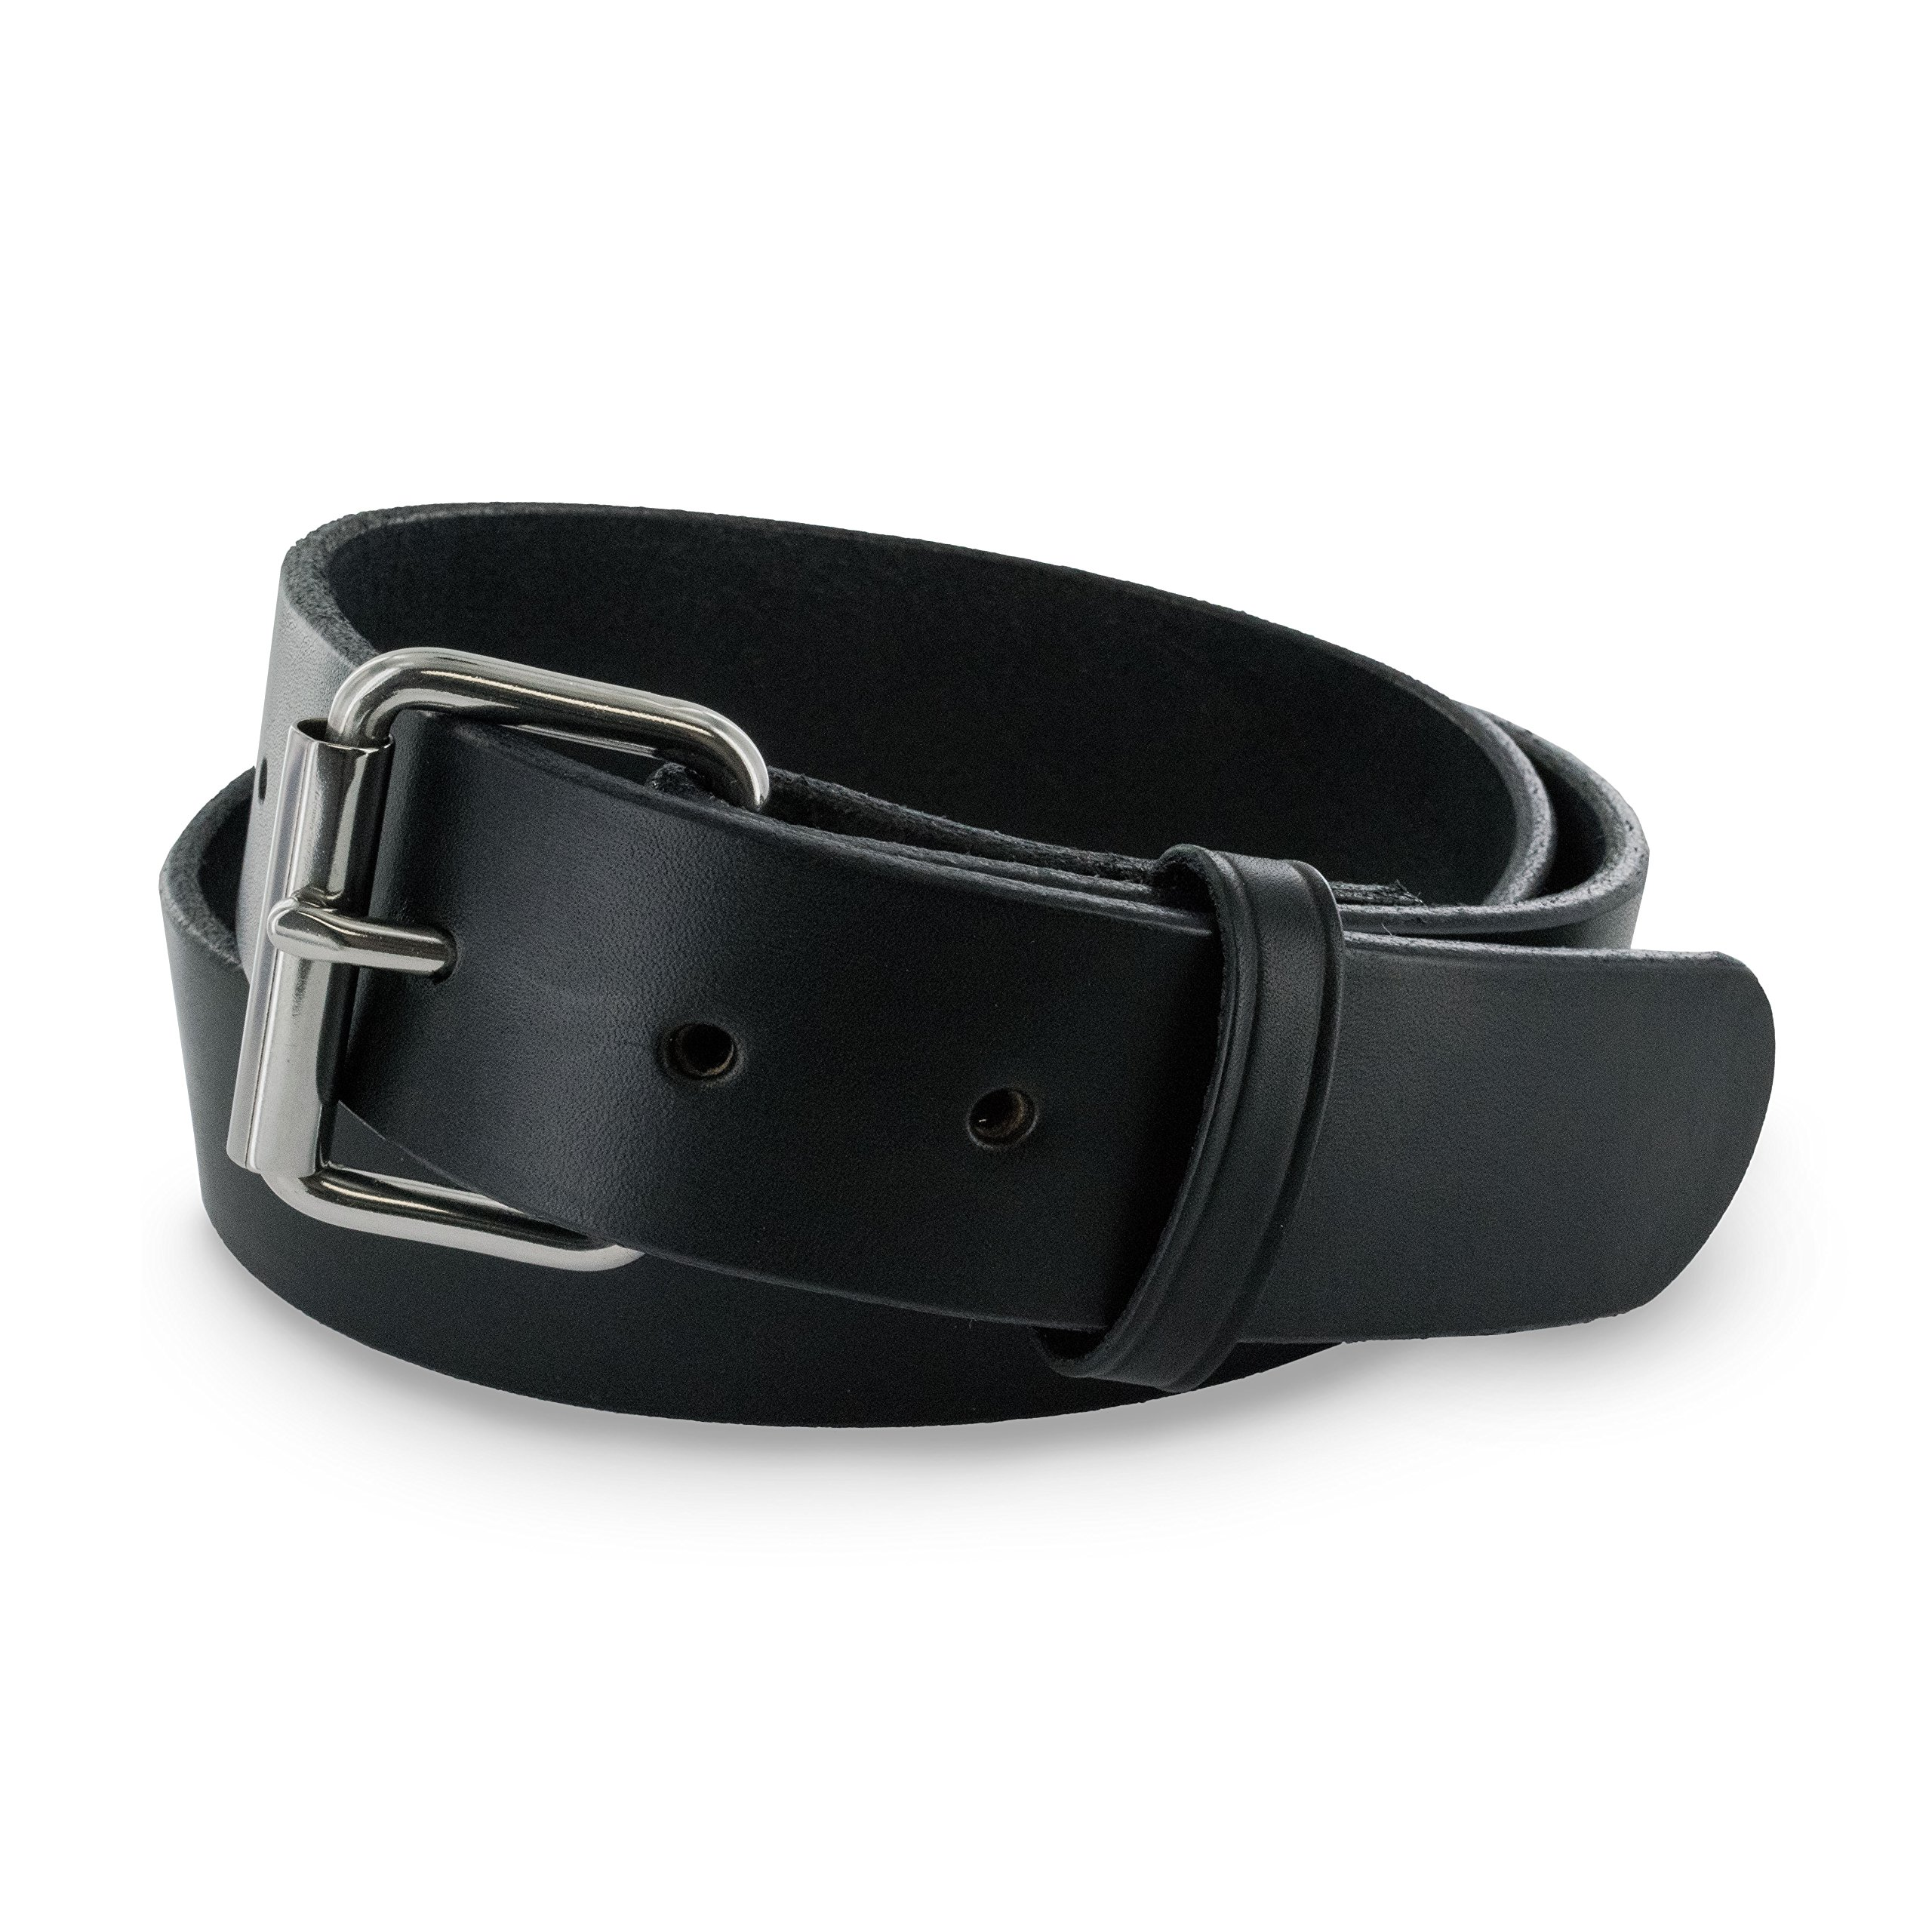 Hanks AMA2725 Enforcer Belt - 1.75'' - Black - 60 by Hanks Belt